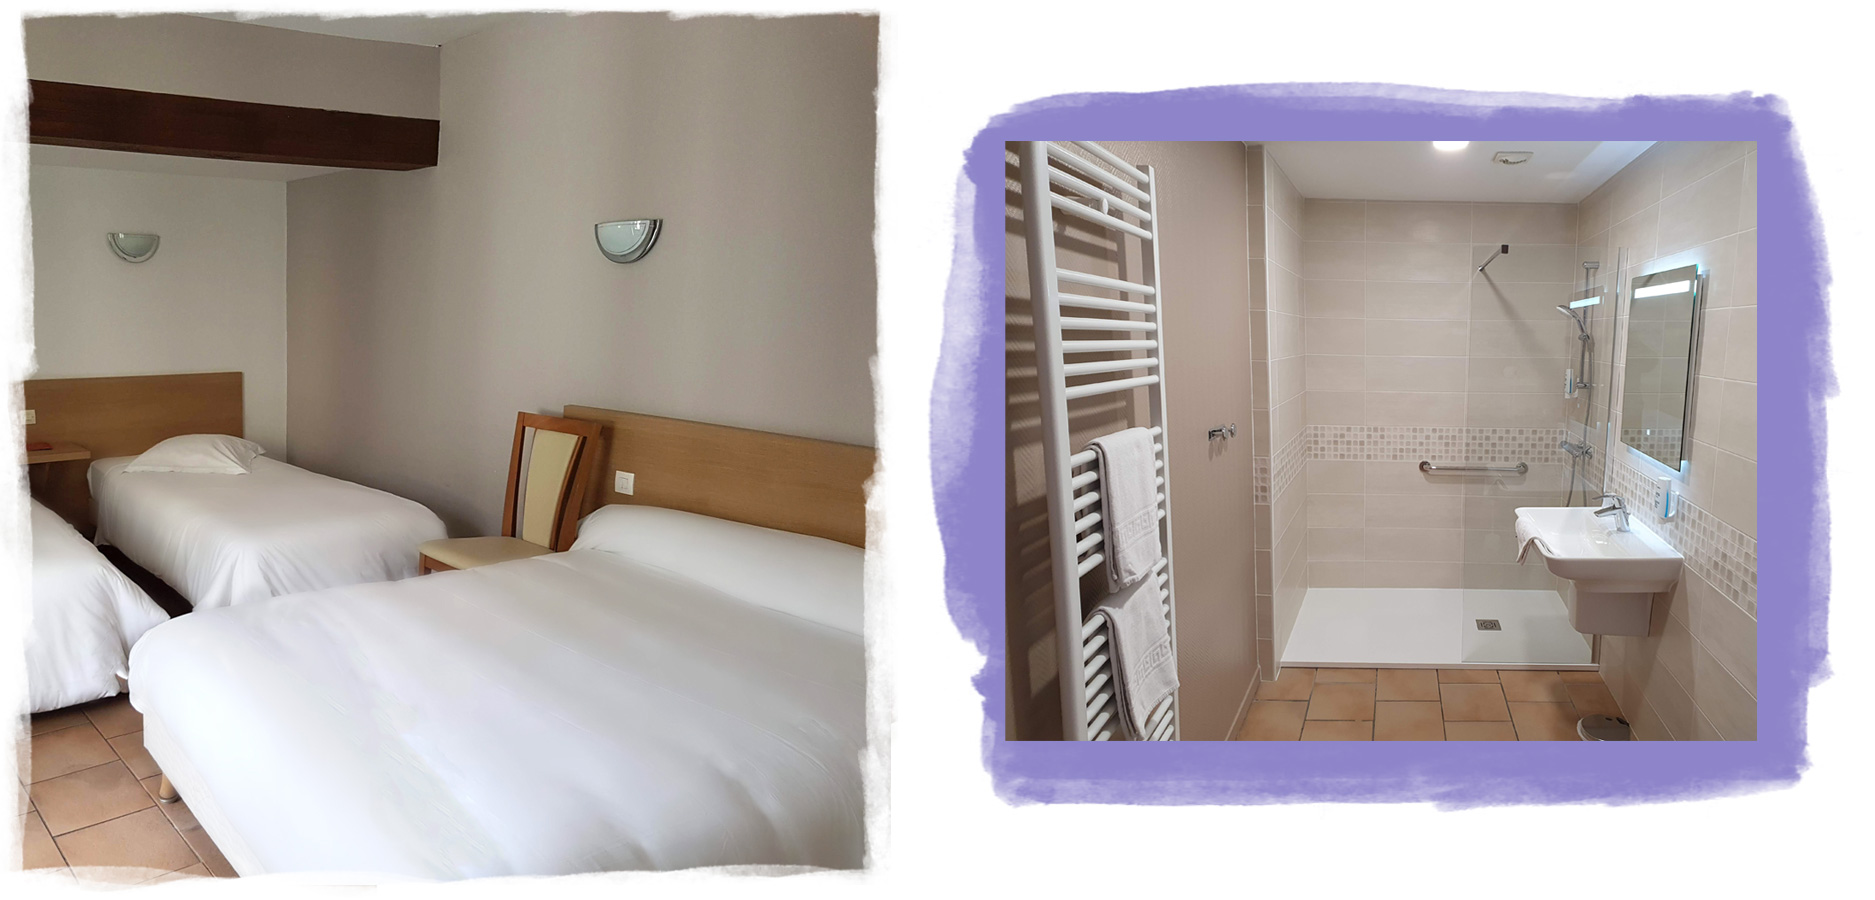 Details of a room for four people full-foot with shower